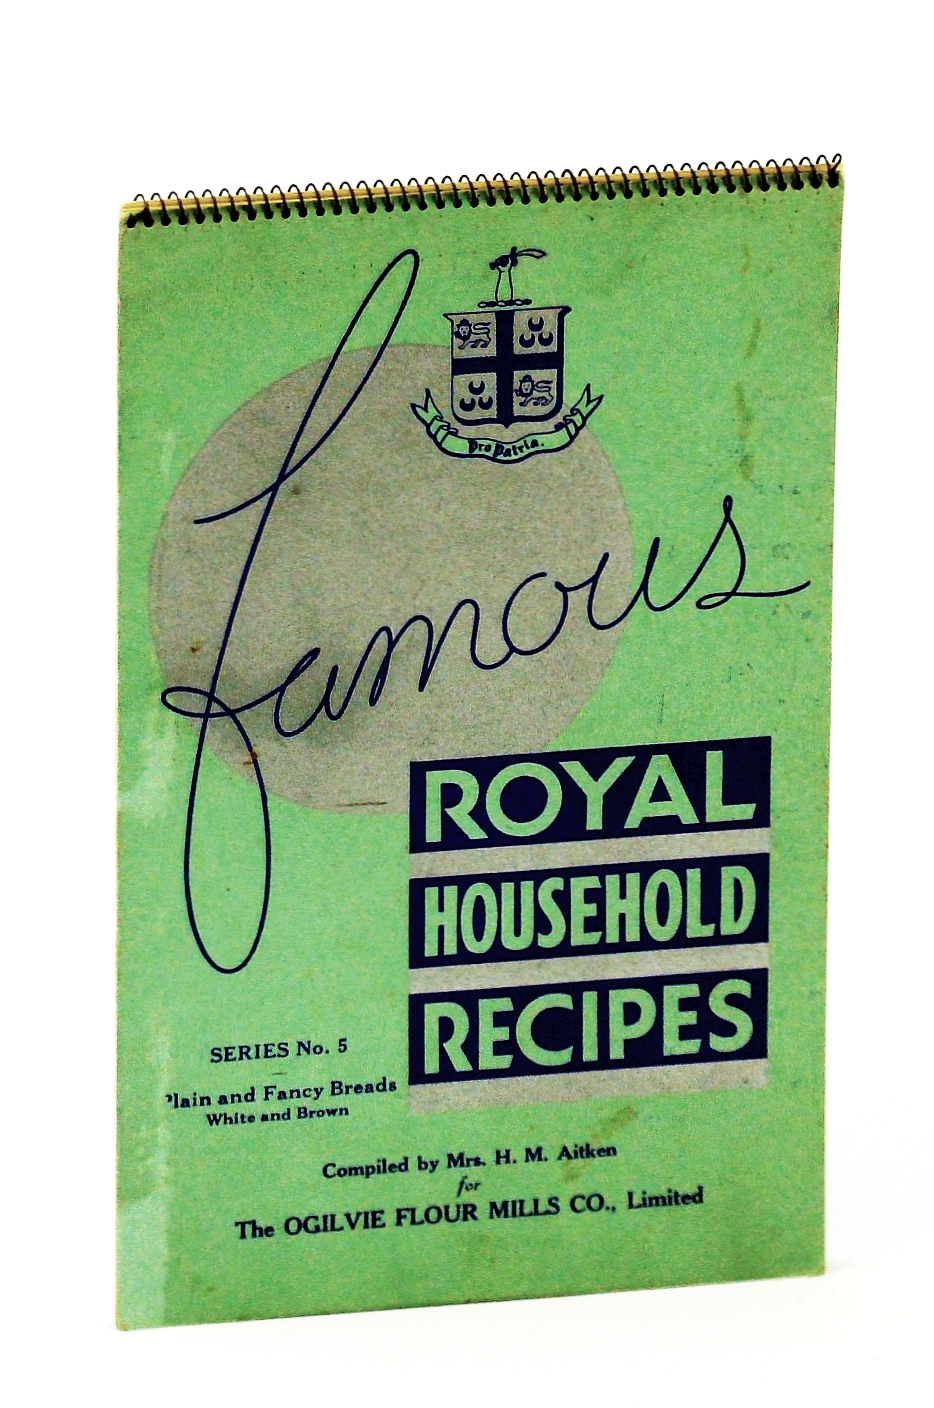 Image for FAMOUS ROYAL HOUSEHOLD RECIPES Series No. 5 Plain and Fancy Breads White and Brown